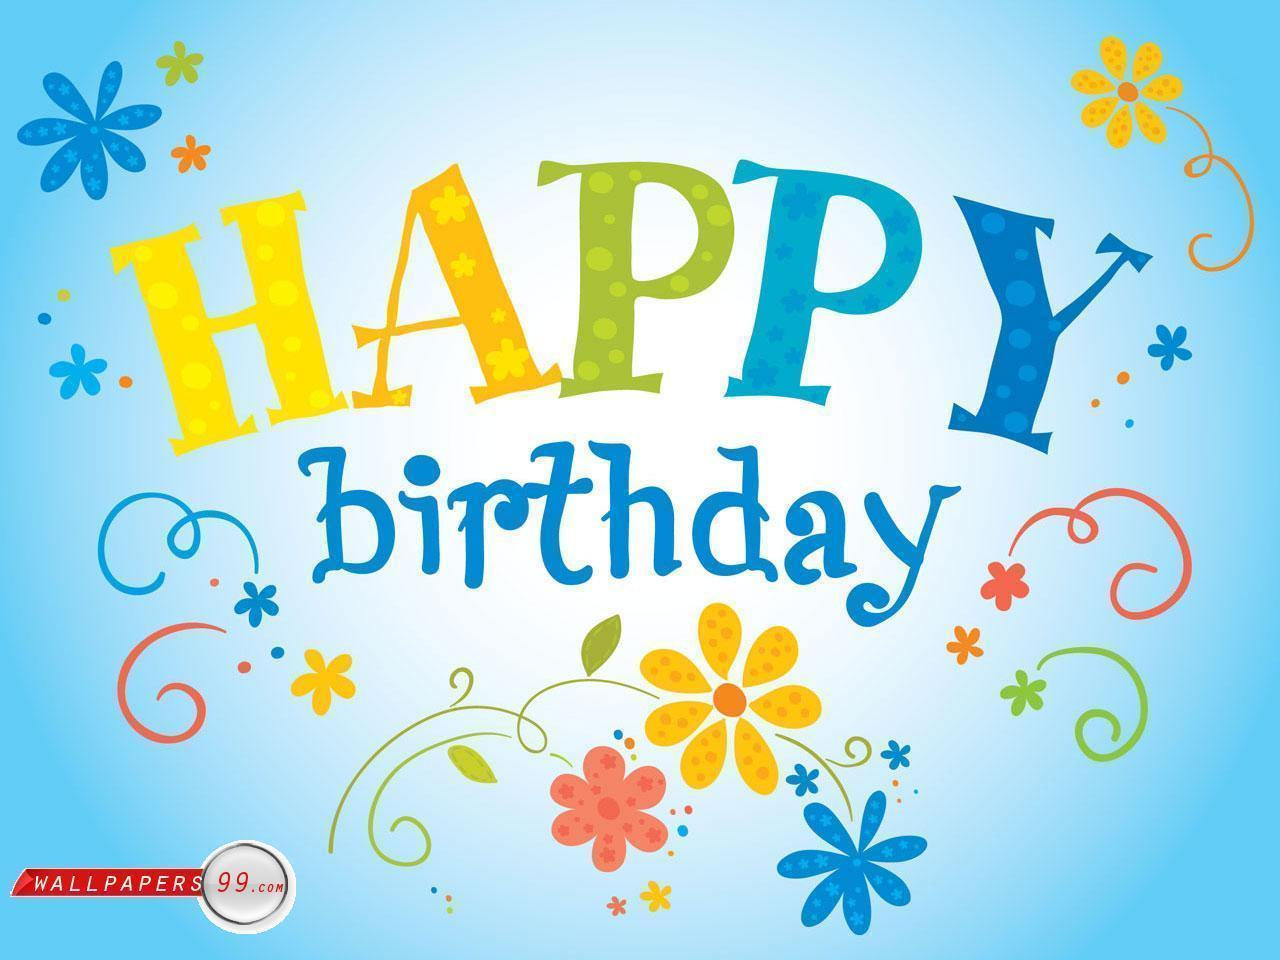 Happy Birthday Wallpapers Free - Wallpaper Cave